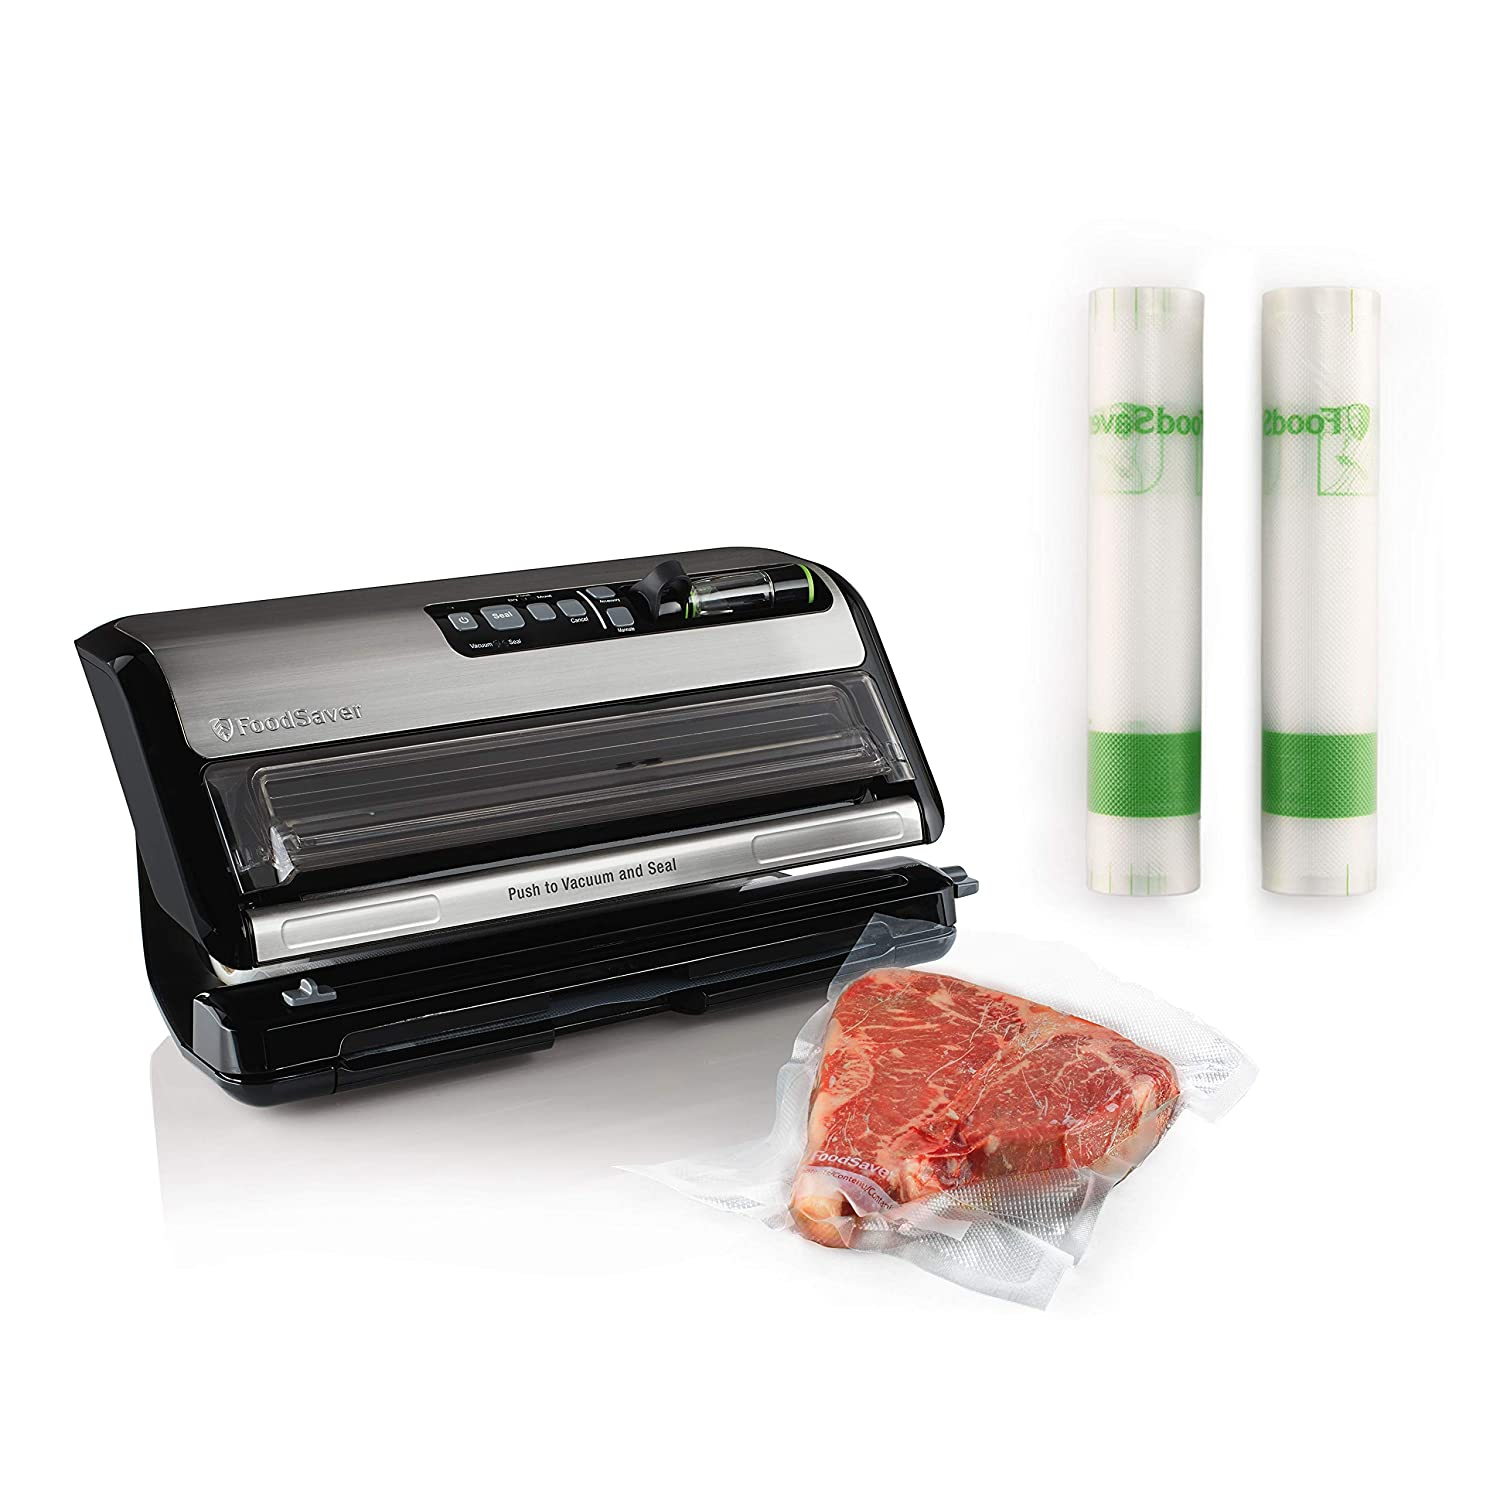 "FoodSaver FM24350ECR Vacuum Sealer System with Handheld Sealer and Starter Kit & FoodSaver 11"" x 14' Easy Seal & Peel Vacuum Seal Rolls, 2 Pack"